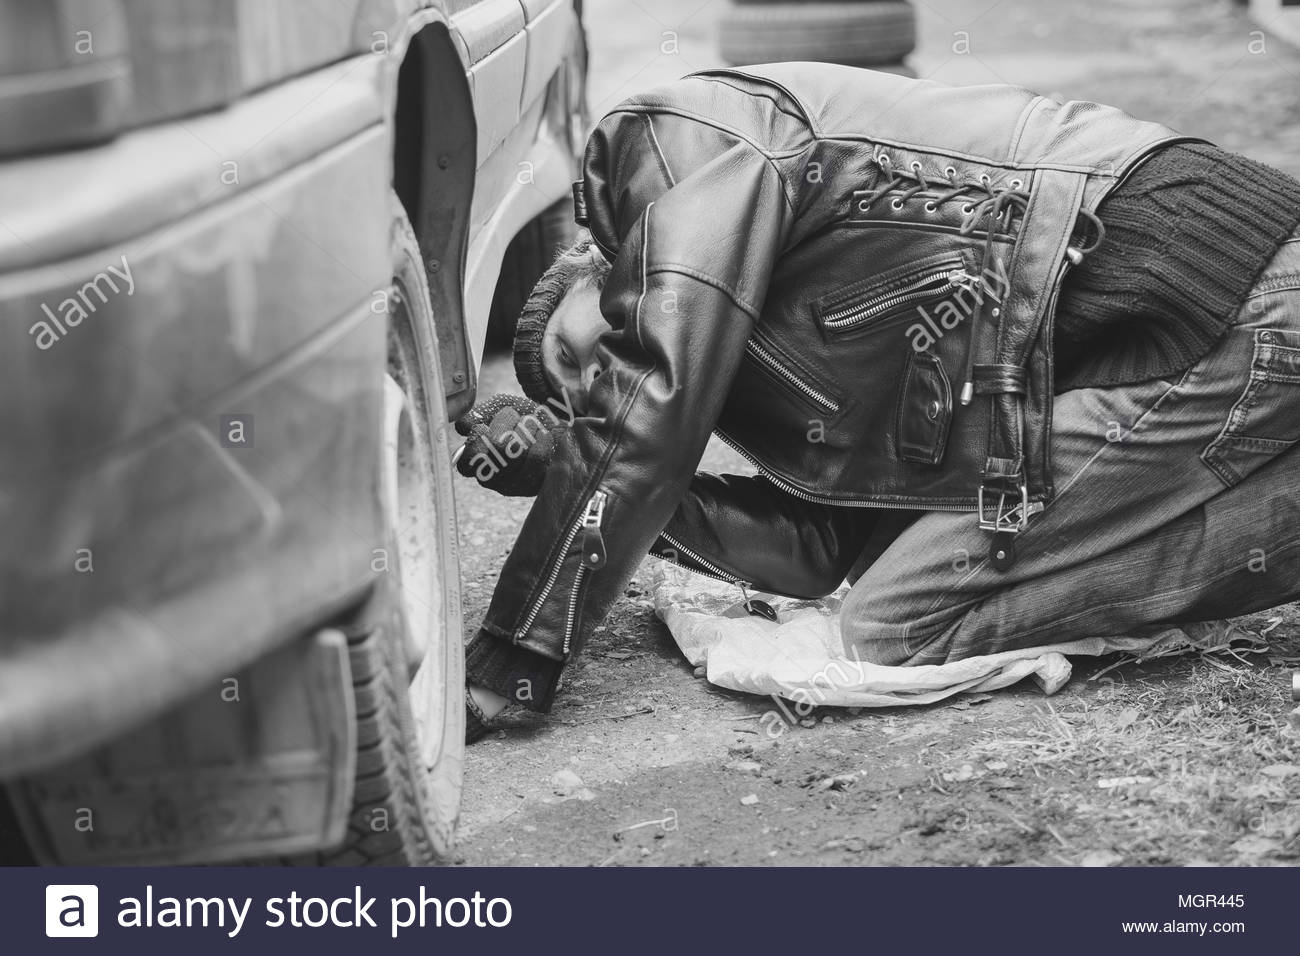 Run flat tyre stock photos run flat tyre stock images alamy change a flat car tire on road with tire maintenance damaged car tyre stock thecheapjerseys Gallery